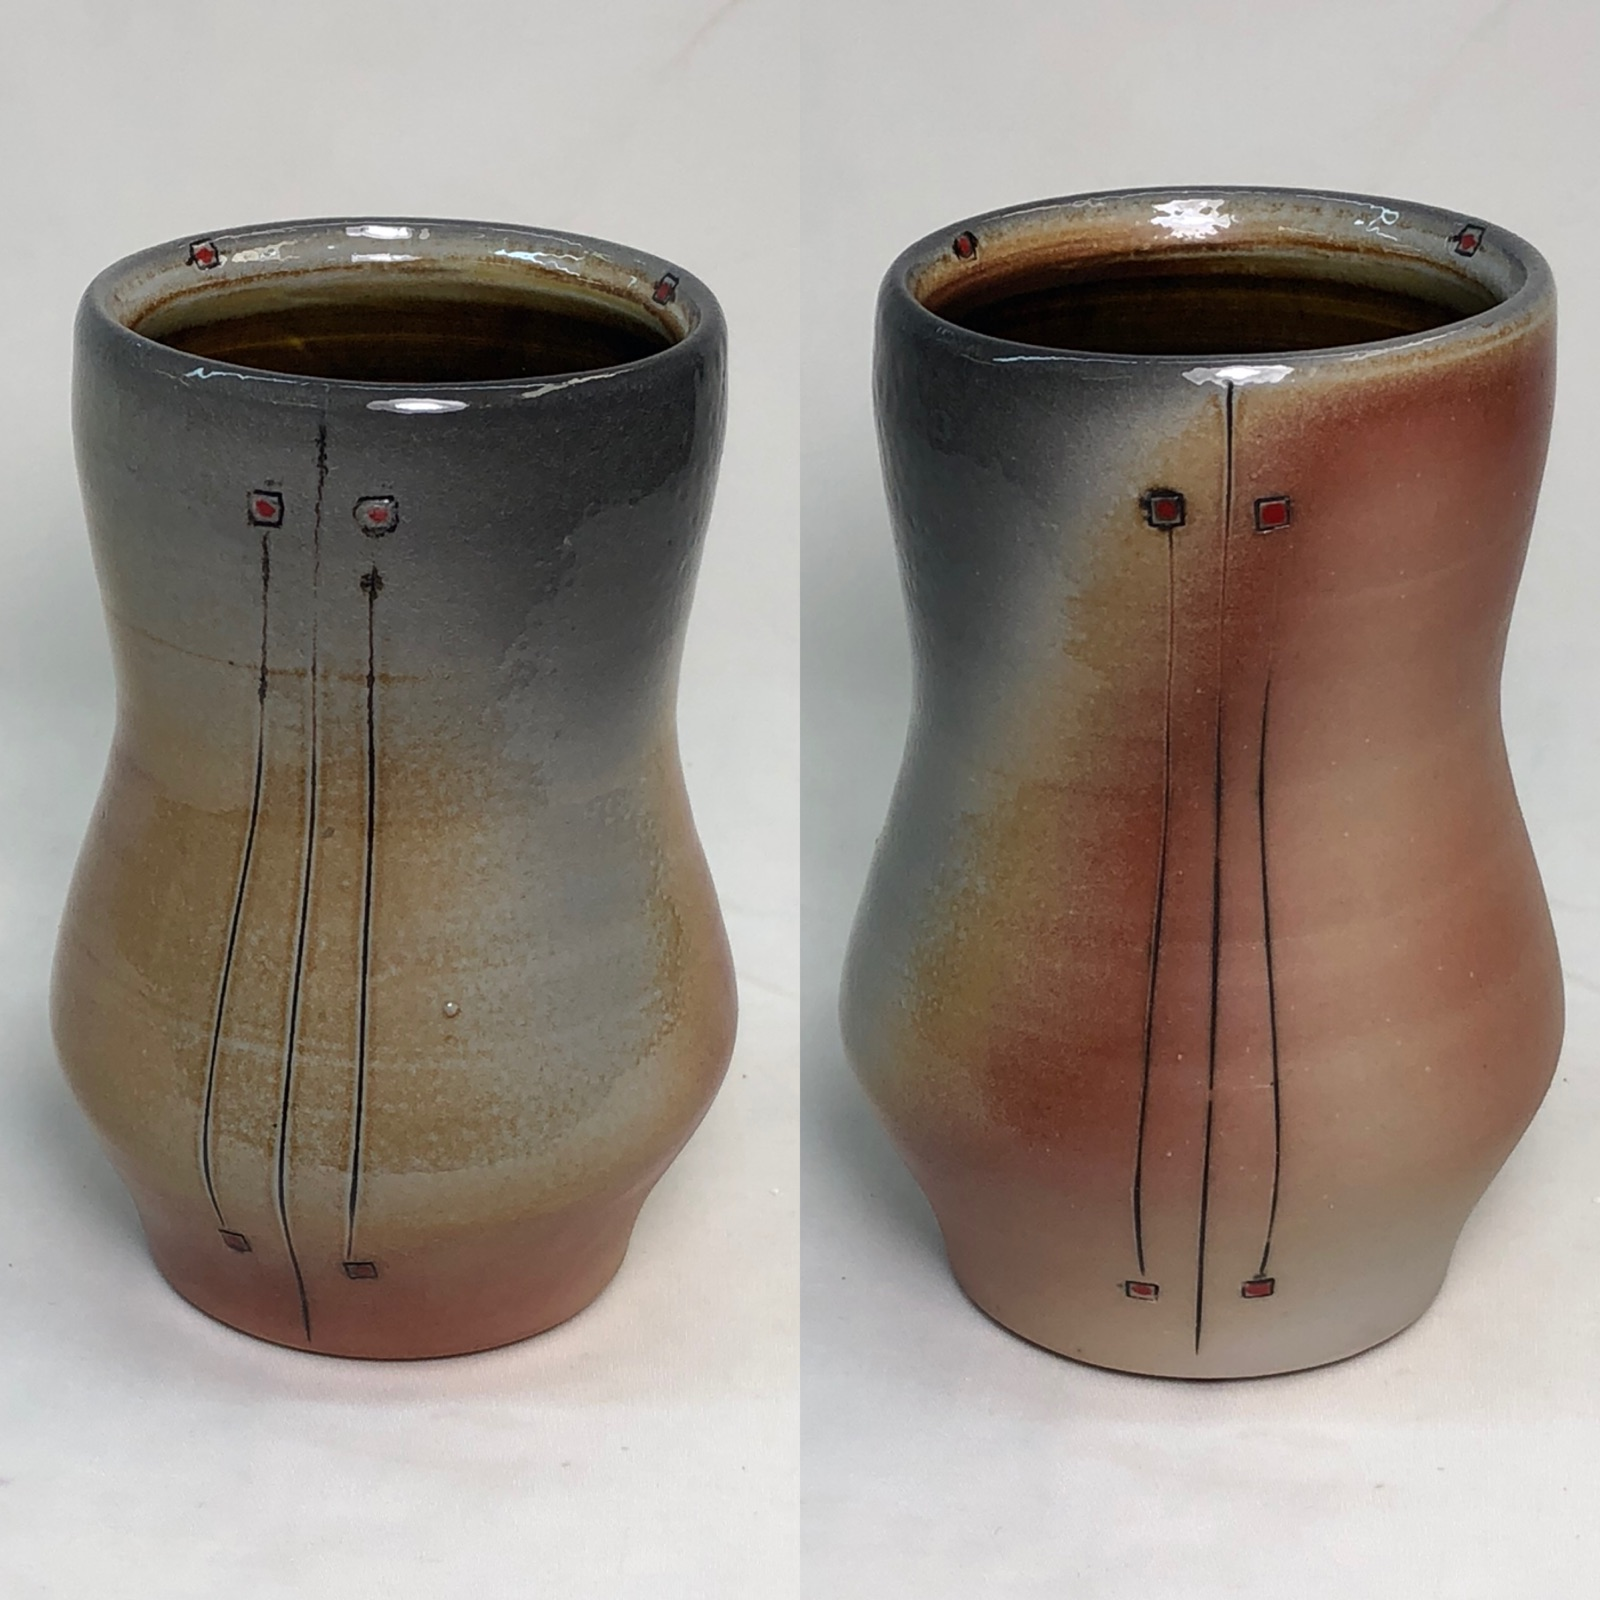 Soda fired porcelain vessel by Heather Lepp